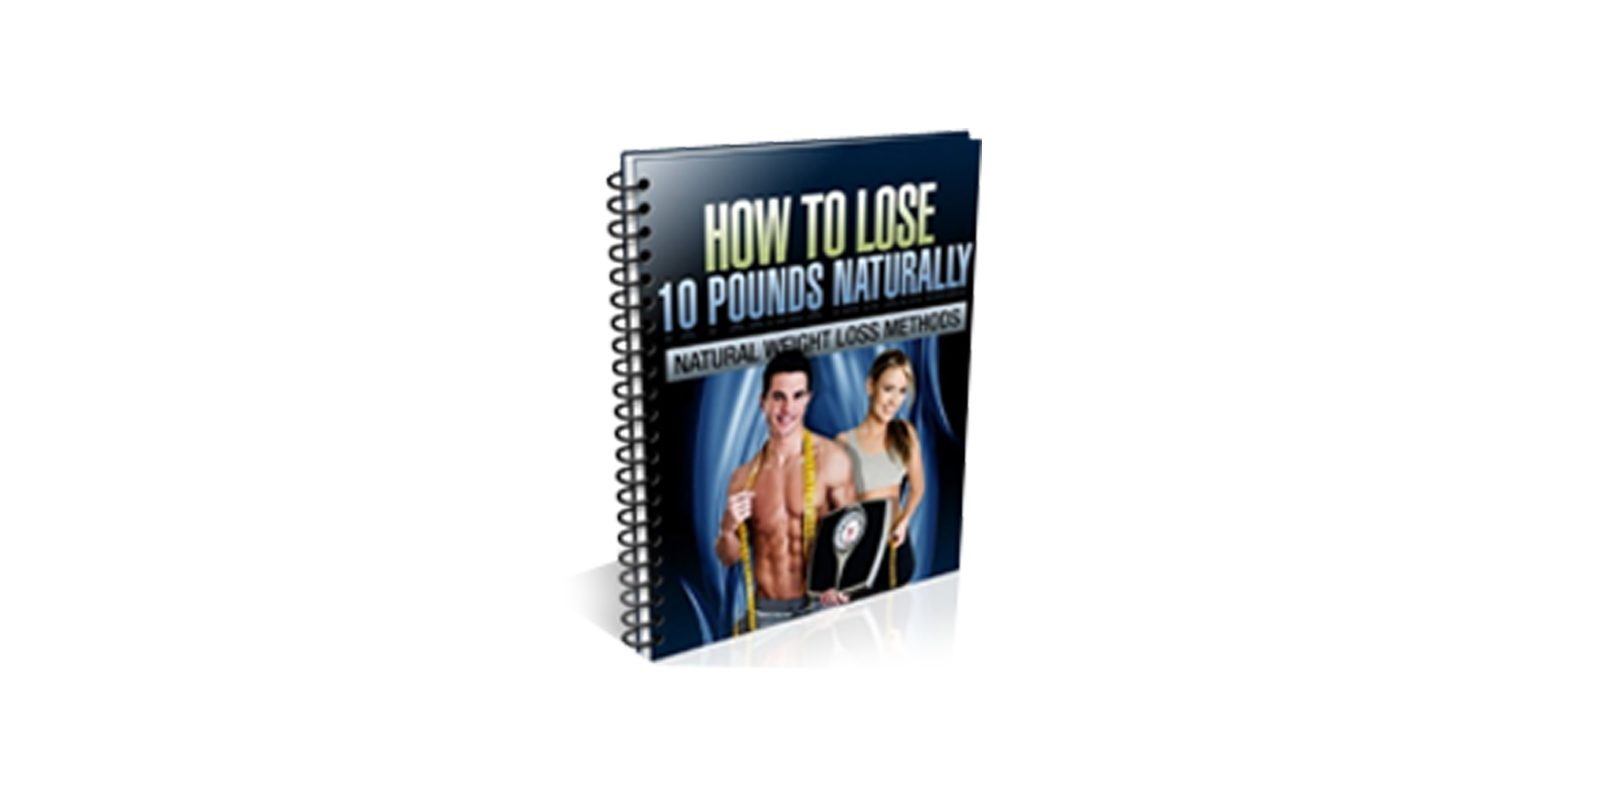 bonus3 How To Lose 10 Pounds Naturally